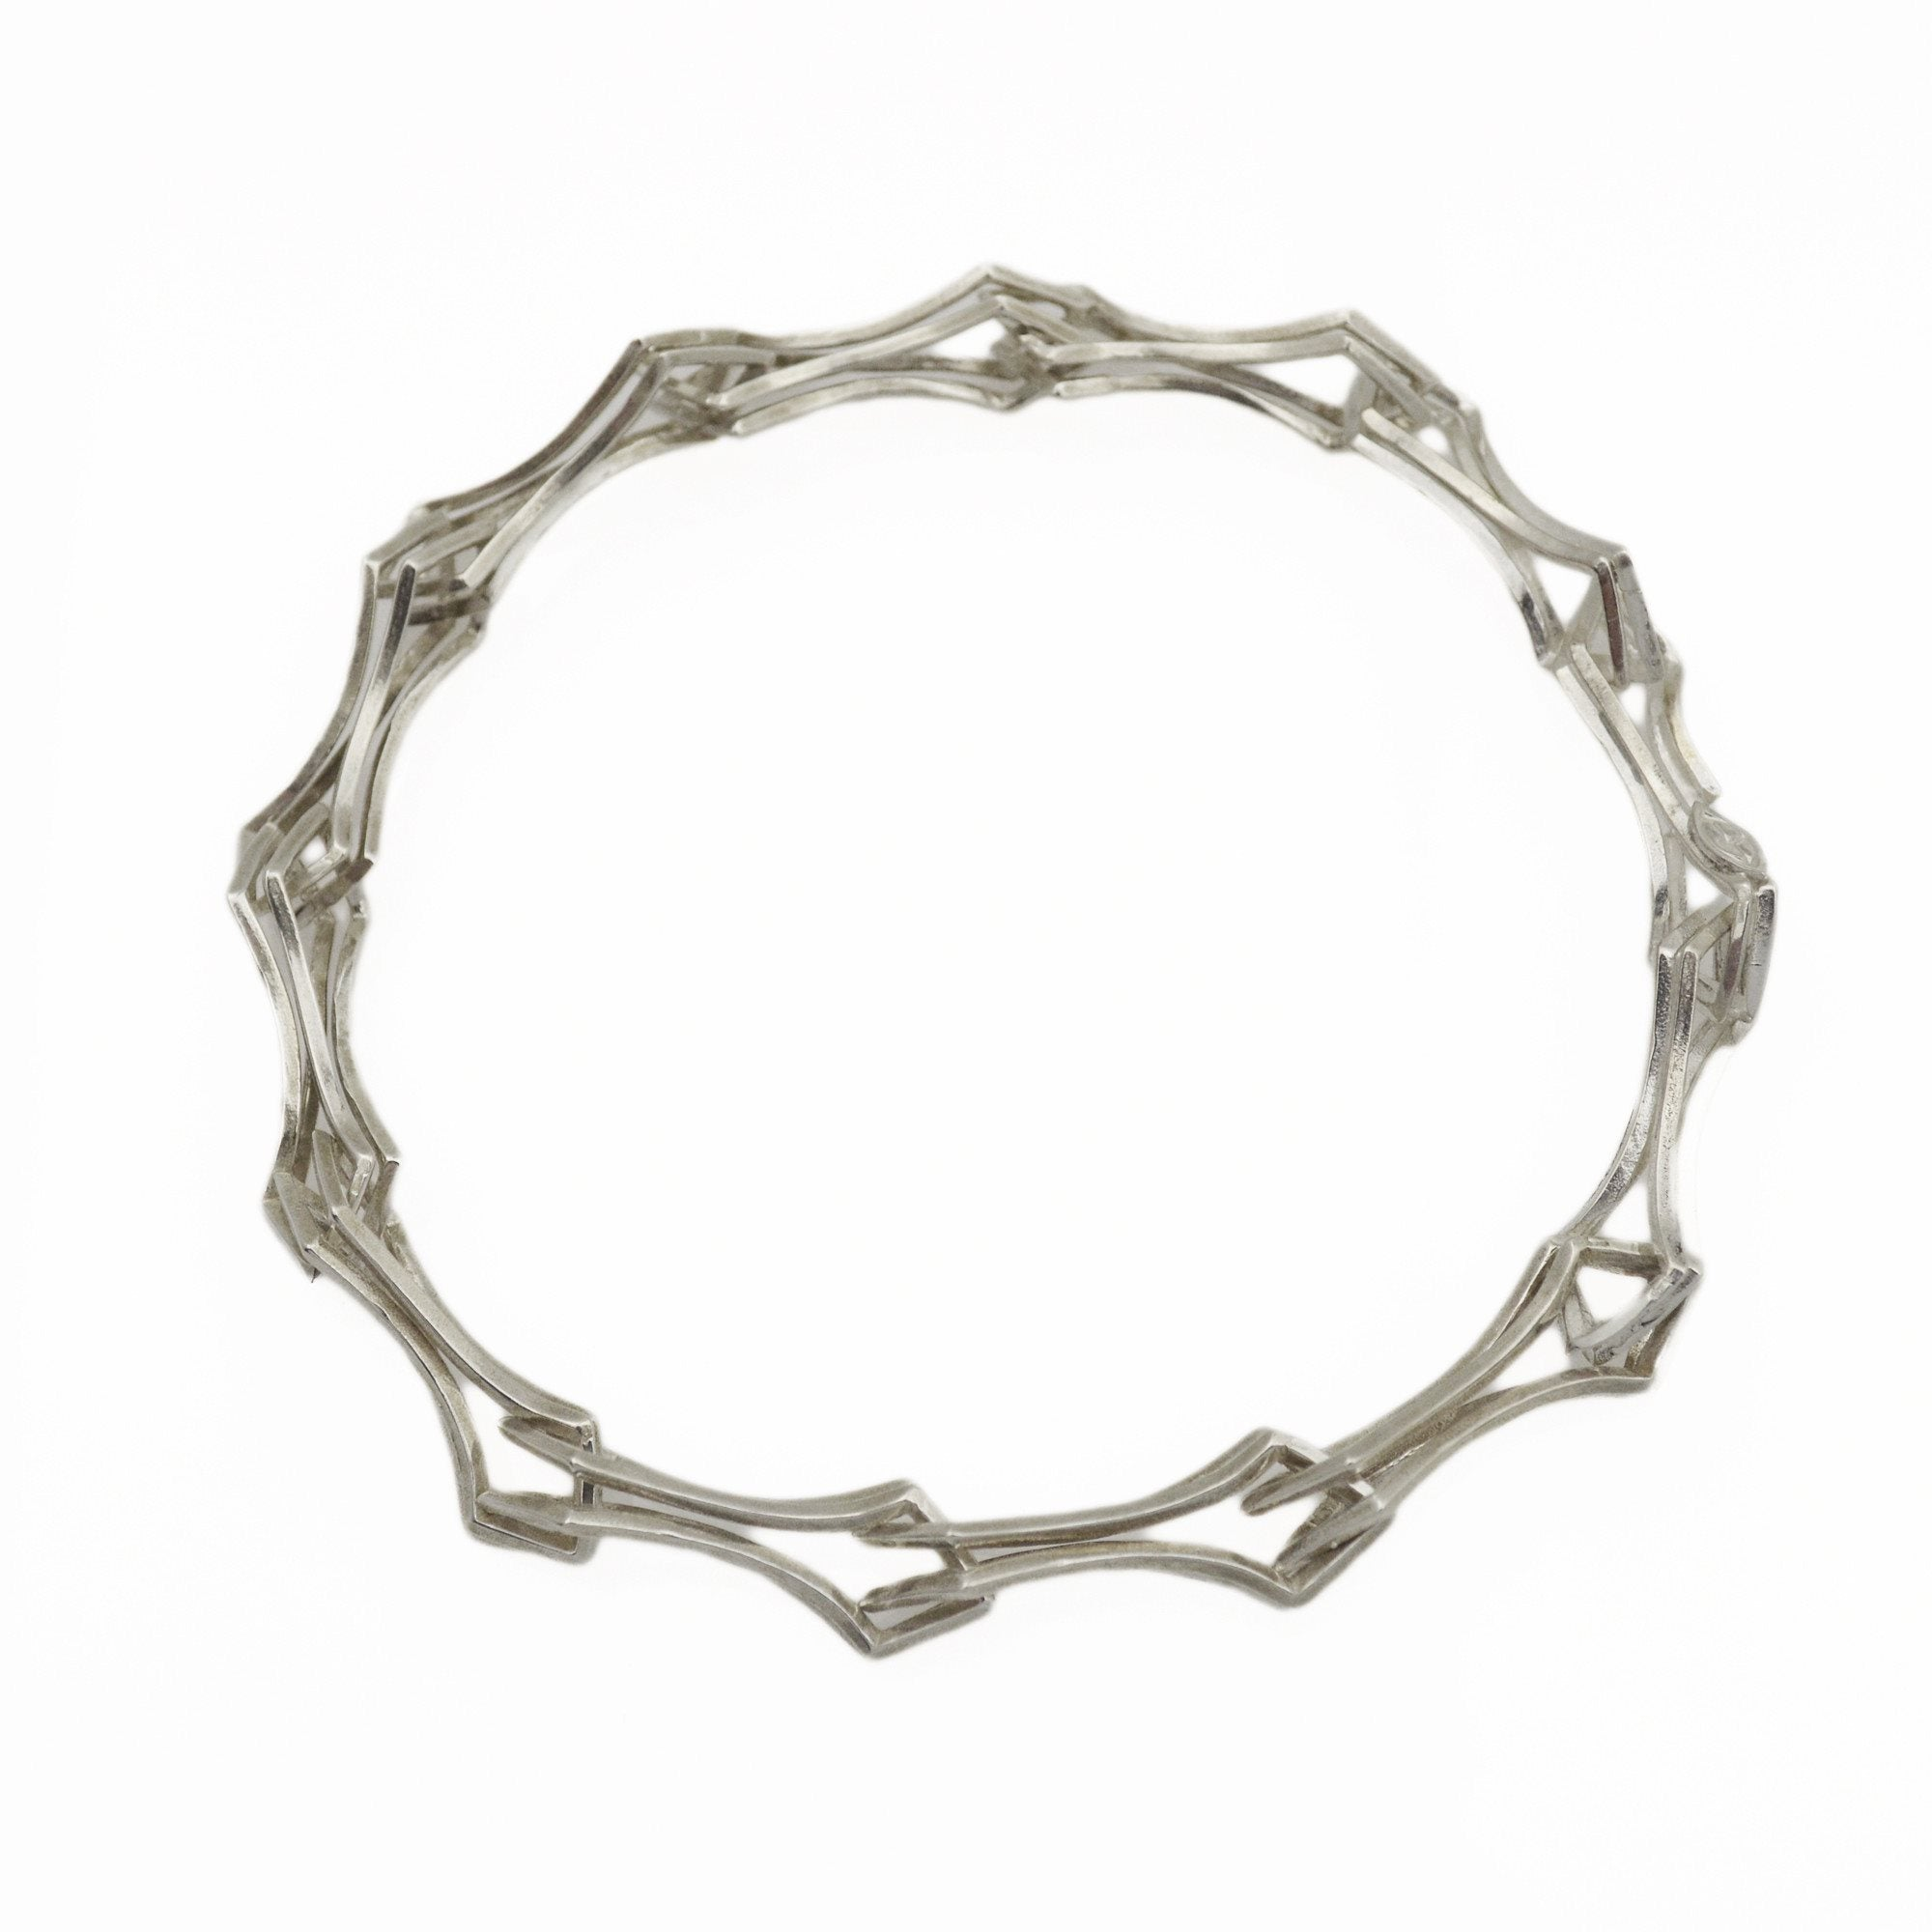 rhodium cheap linked bracelet monday product vitruta